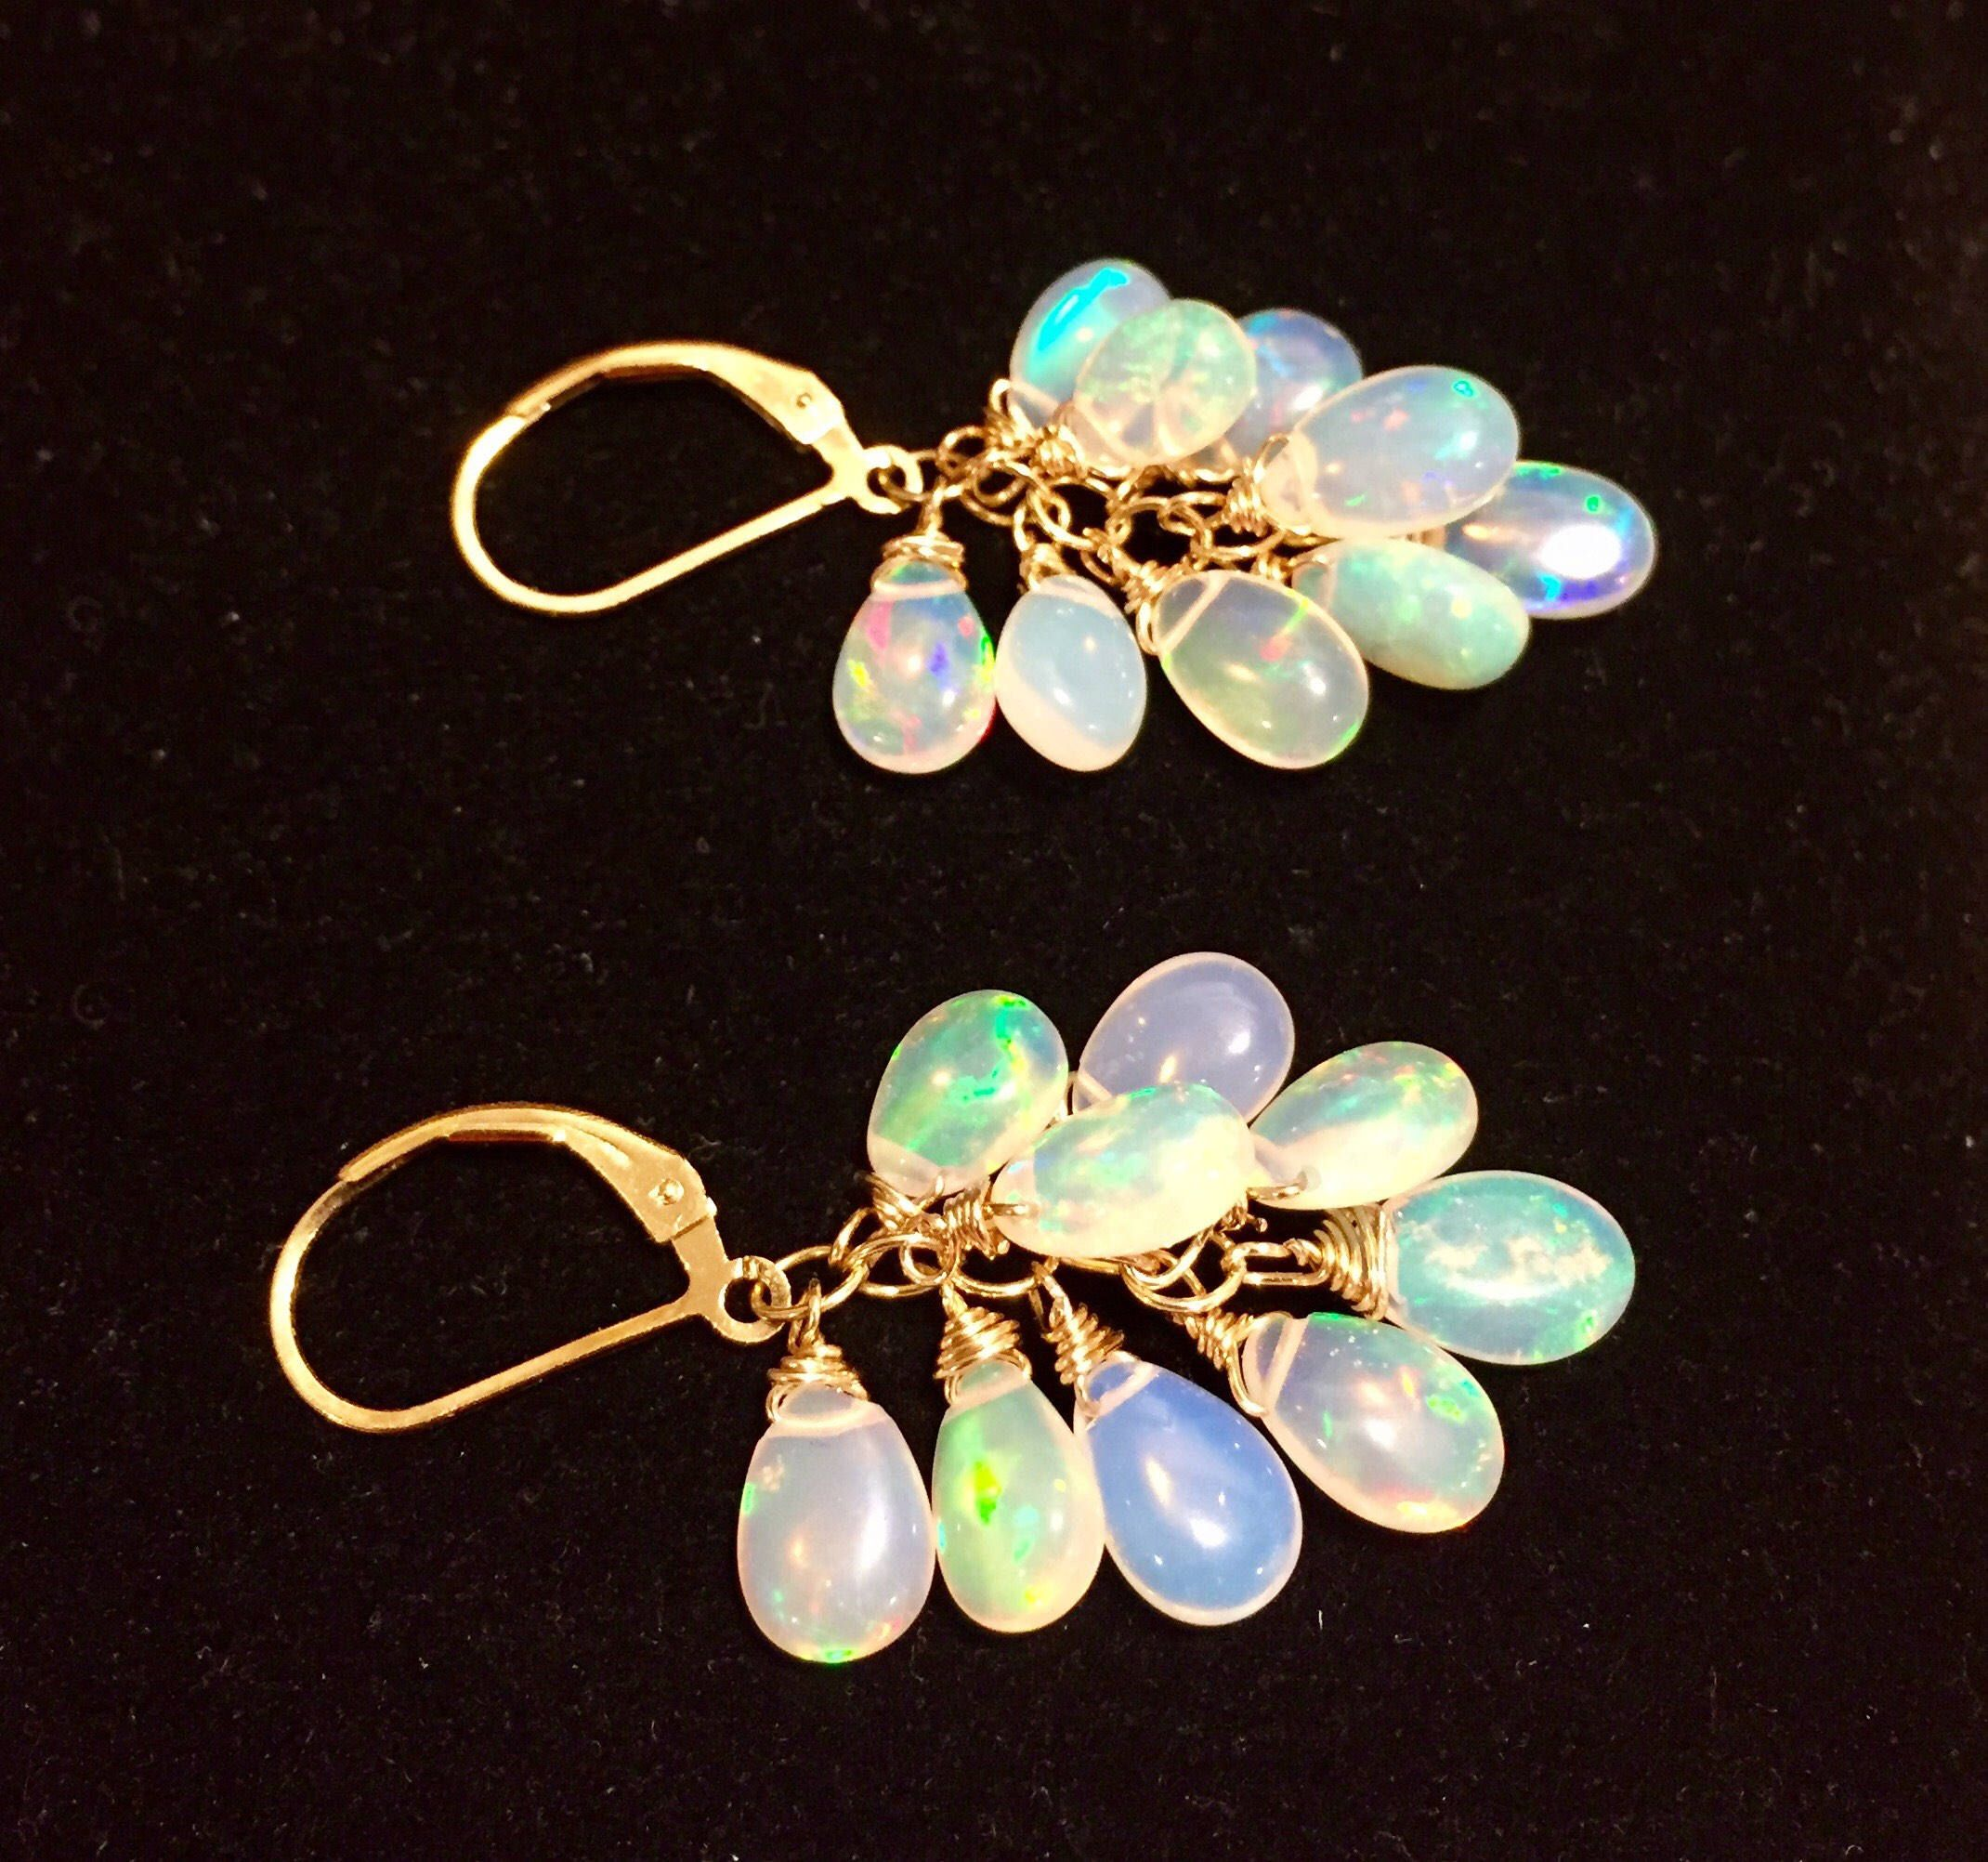 on orders earrings shipping free stud watches over opal product overstock goldplated genuine jewelry crown